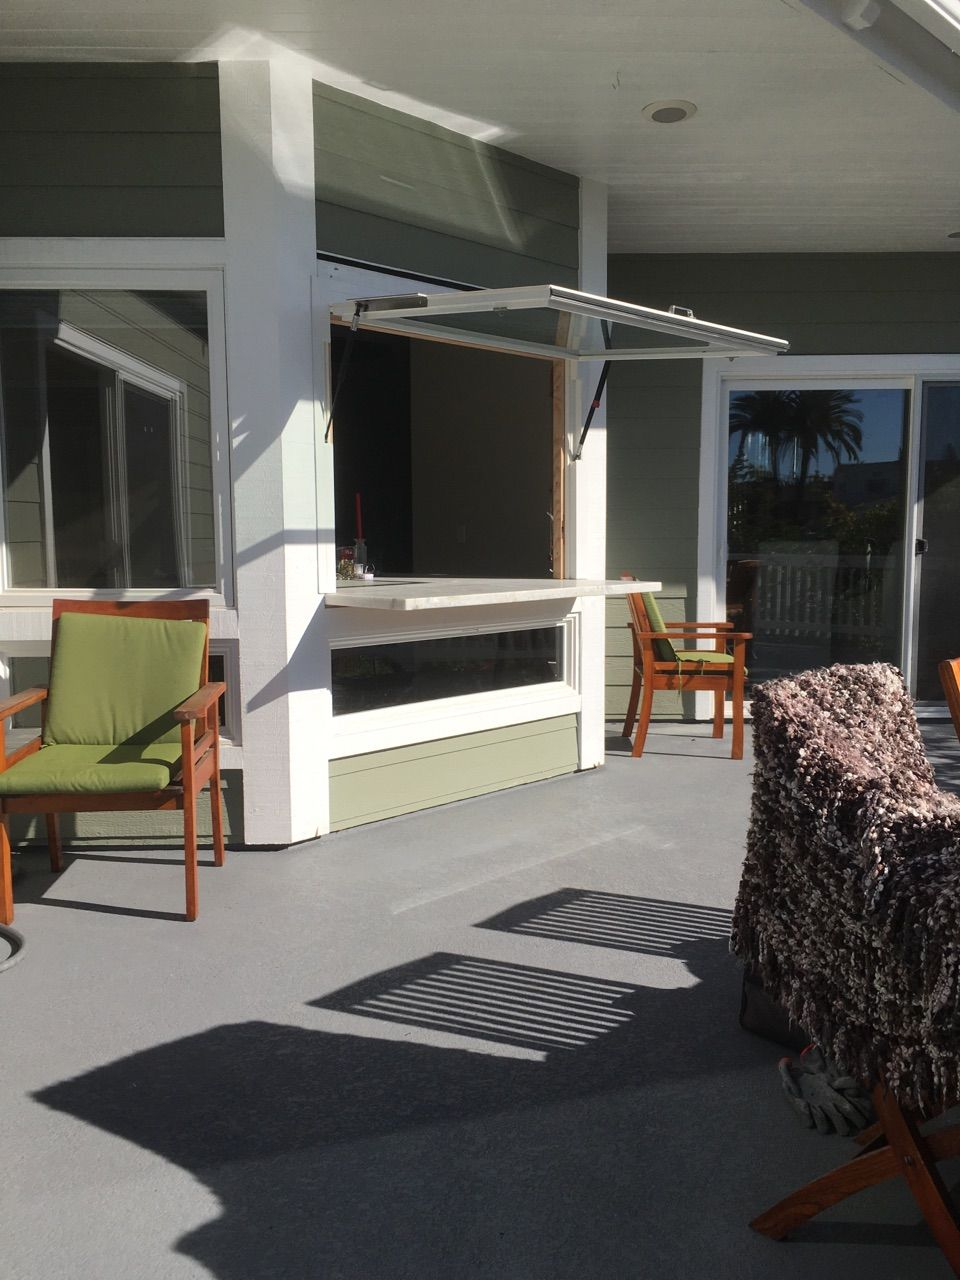 San Clemente Has Been Flipped Out Www Flipoutwindows Com Outdoor Living Rooms Indoor Outdoor Living Outdoor Spaces